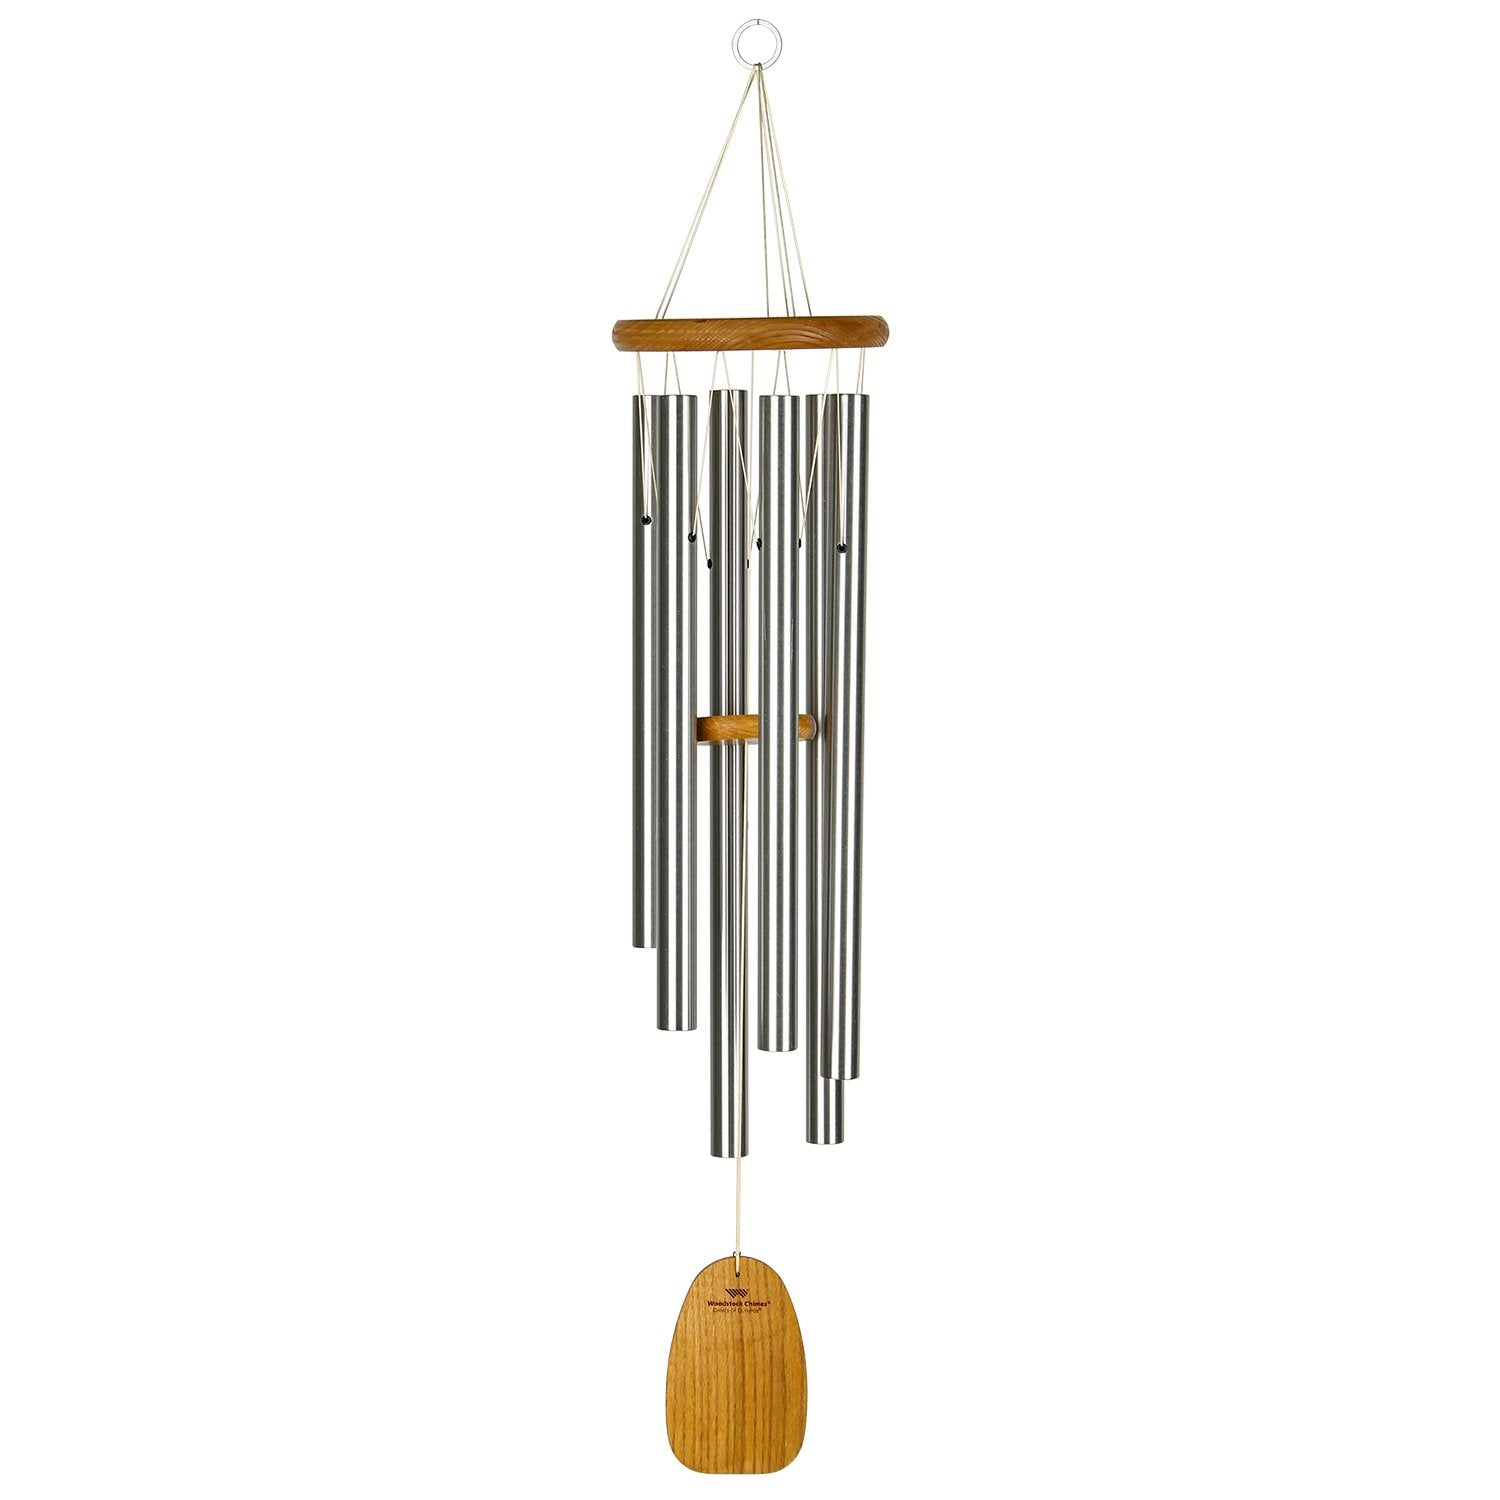 Chimes of Olympos full product image